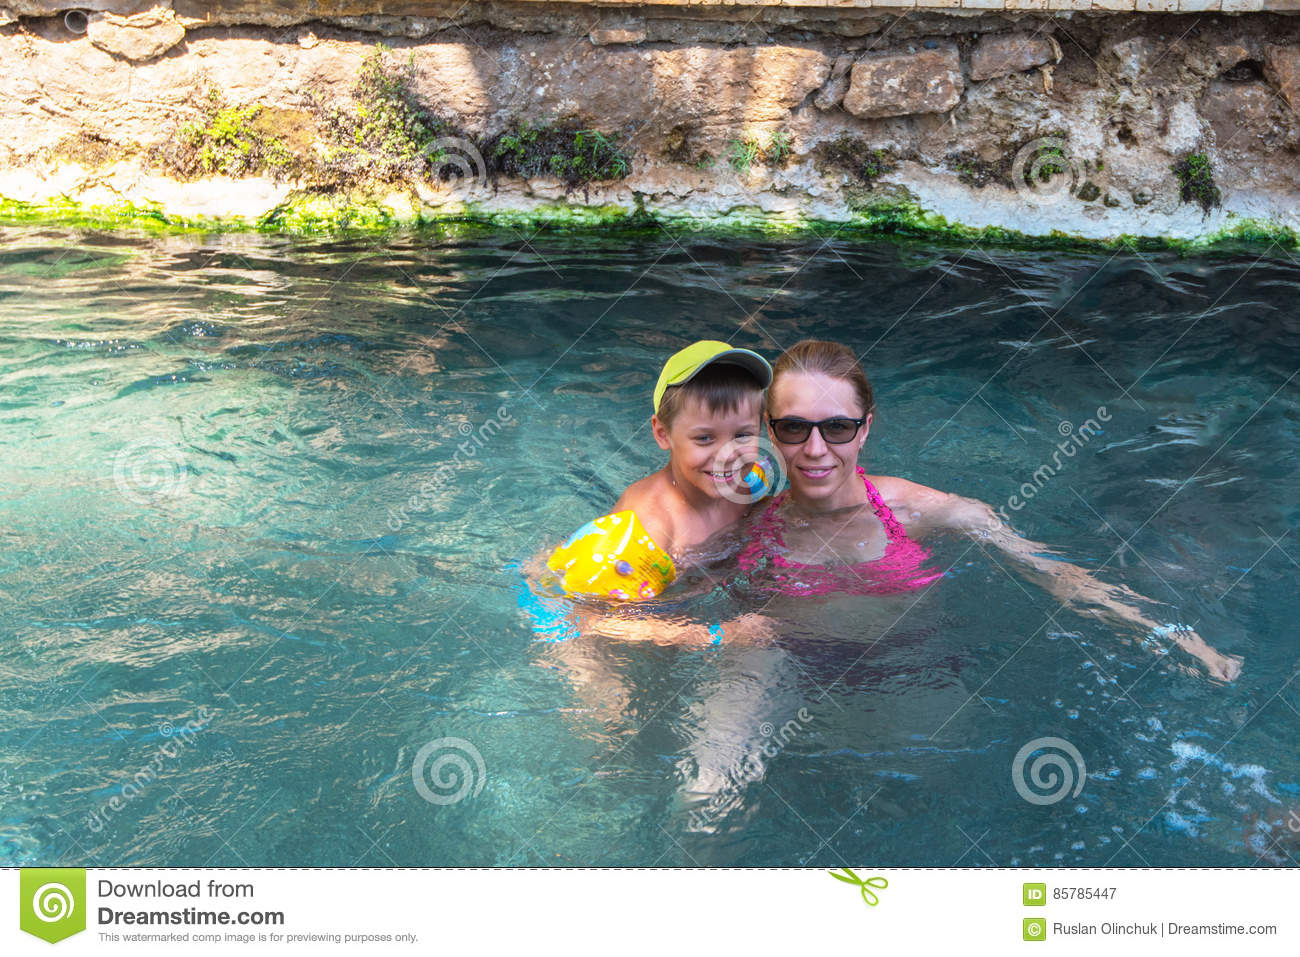 Woman And Her Son In Cleopatra Pool Stock Image - Image of bath ... 21e6419a1e